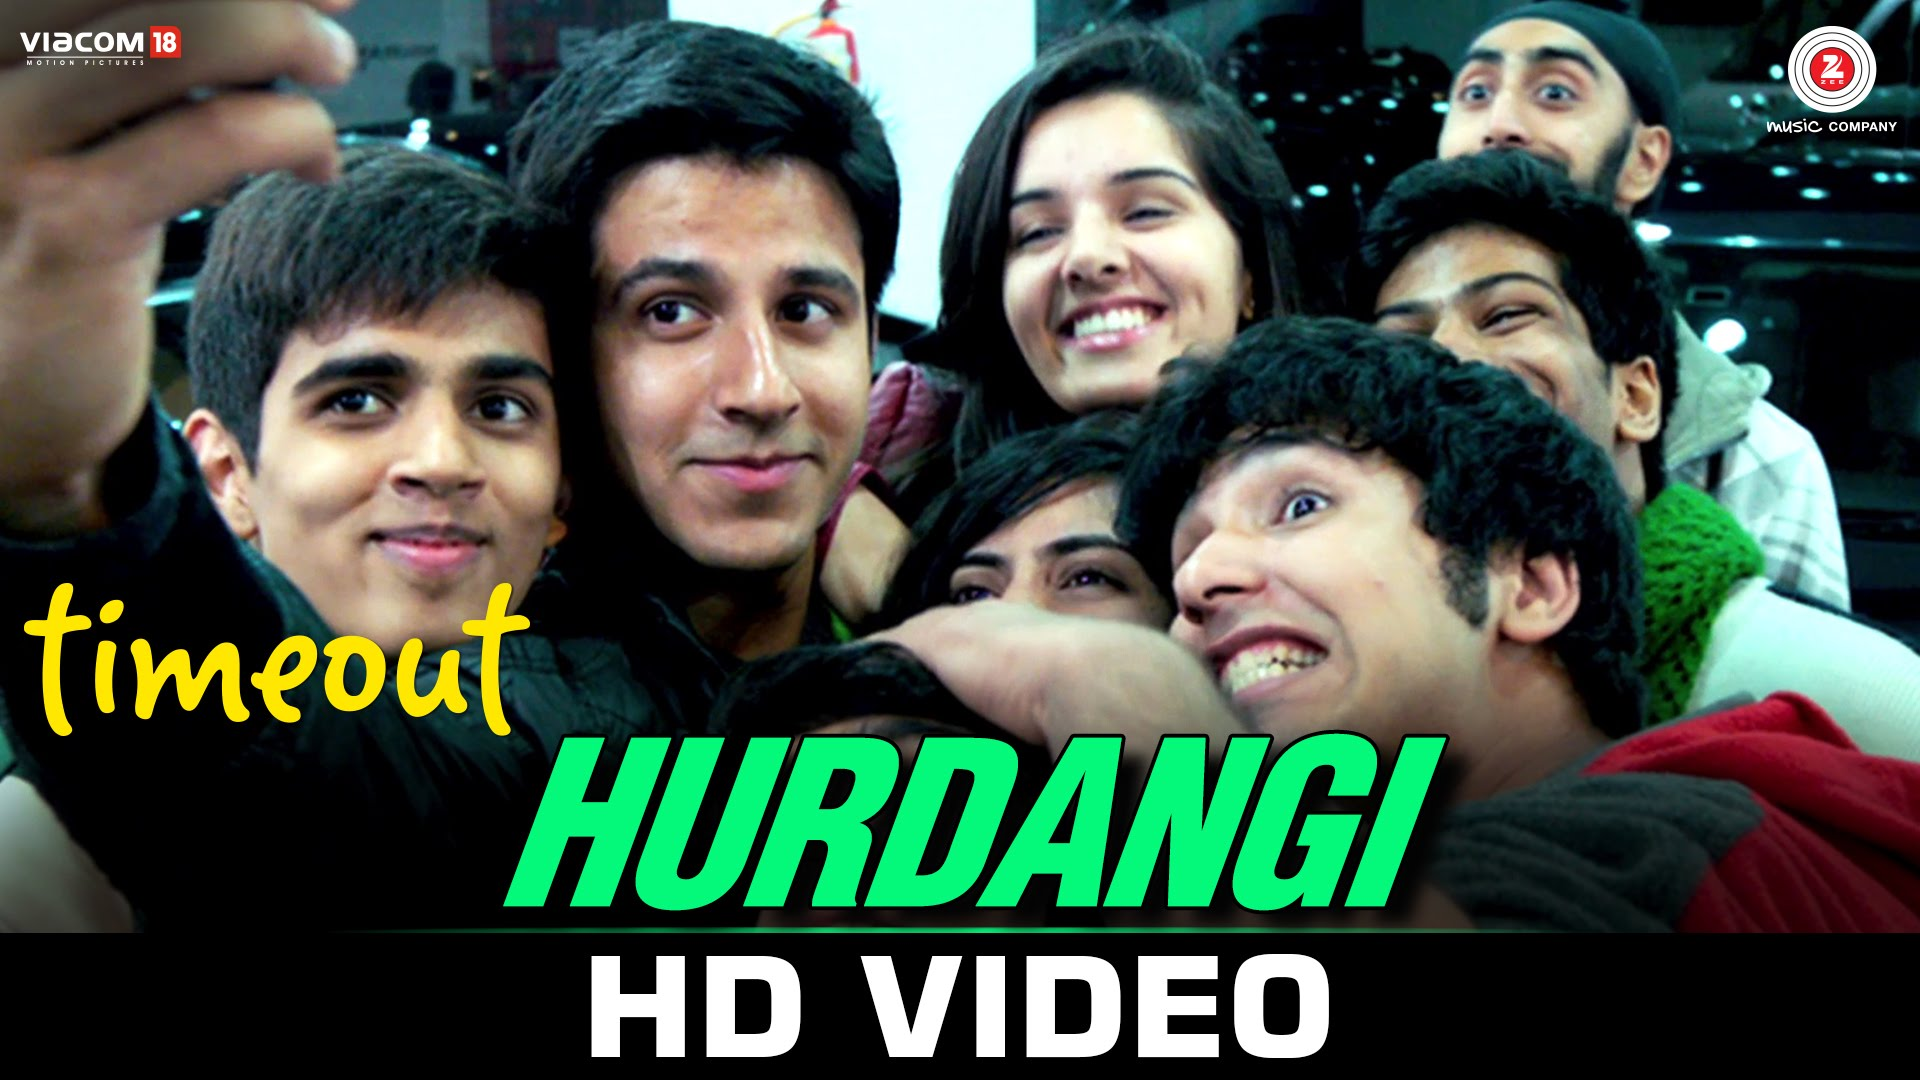 New Song Alert | 'Hurdangi' from Time Out